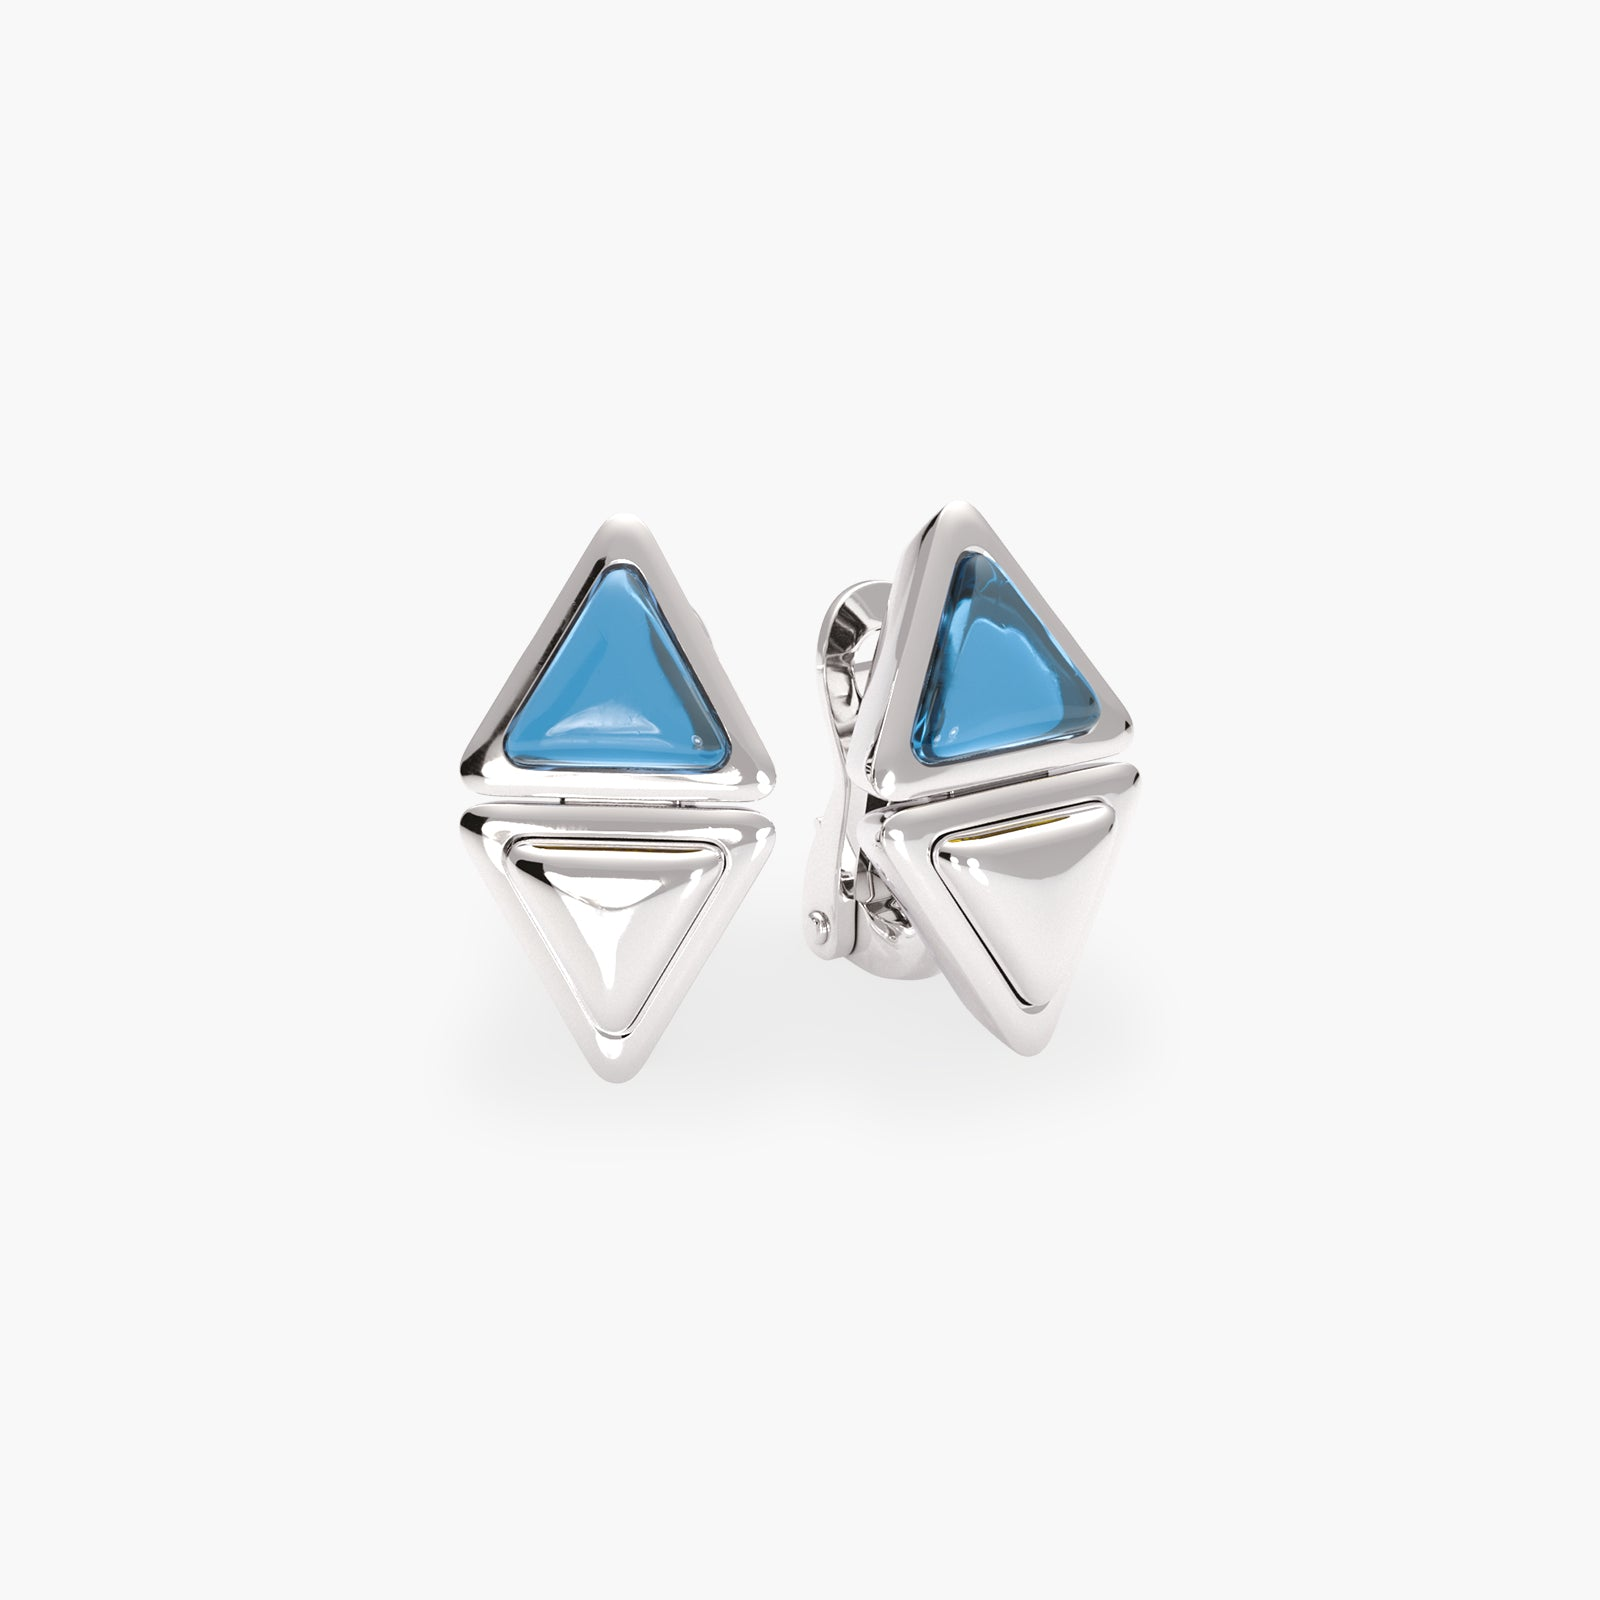 Earrings Short Mirror Gem White Gold Blue Topaz